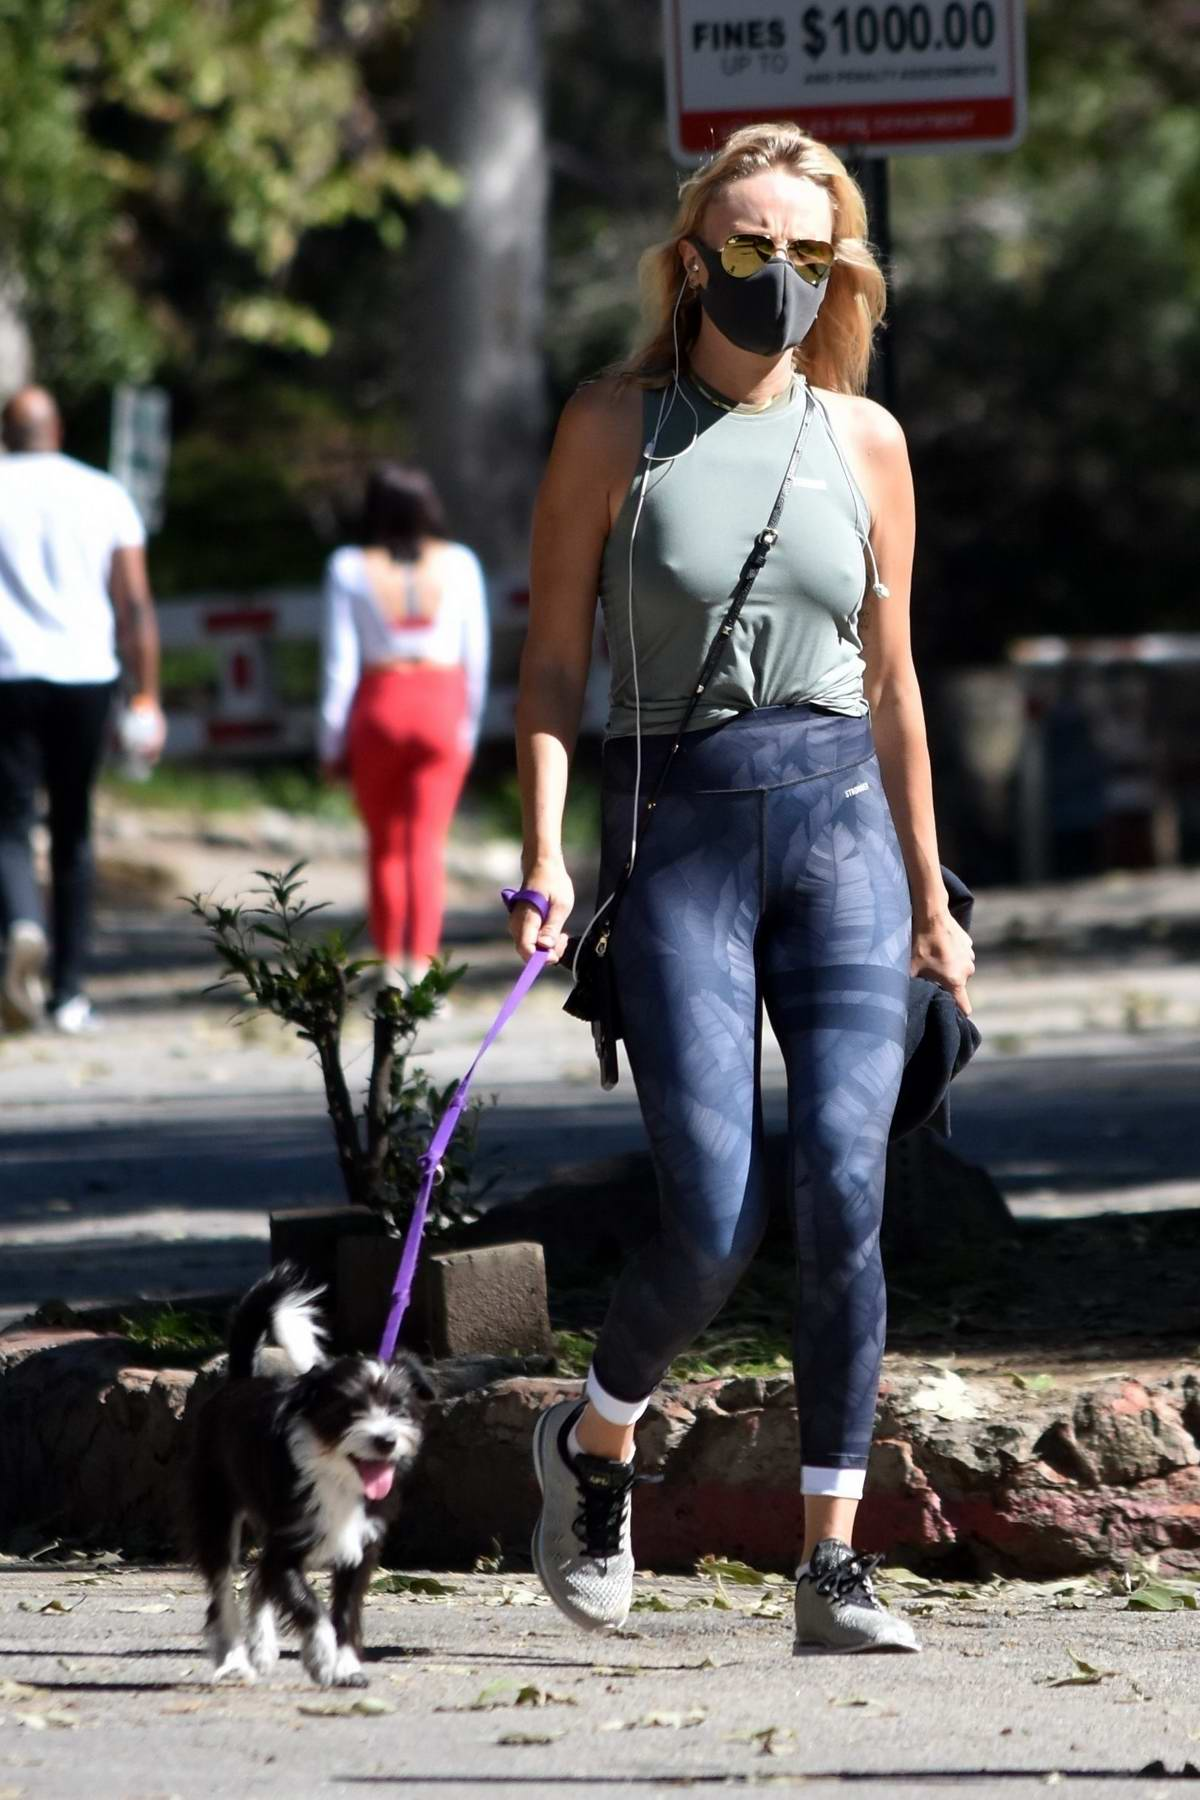 Malin Akerman wears a green tank top and blue leggings while out for a walk with her dog in Los Feliz, California